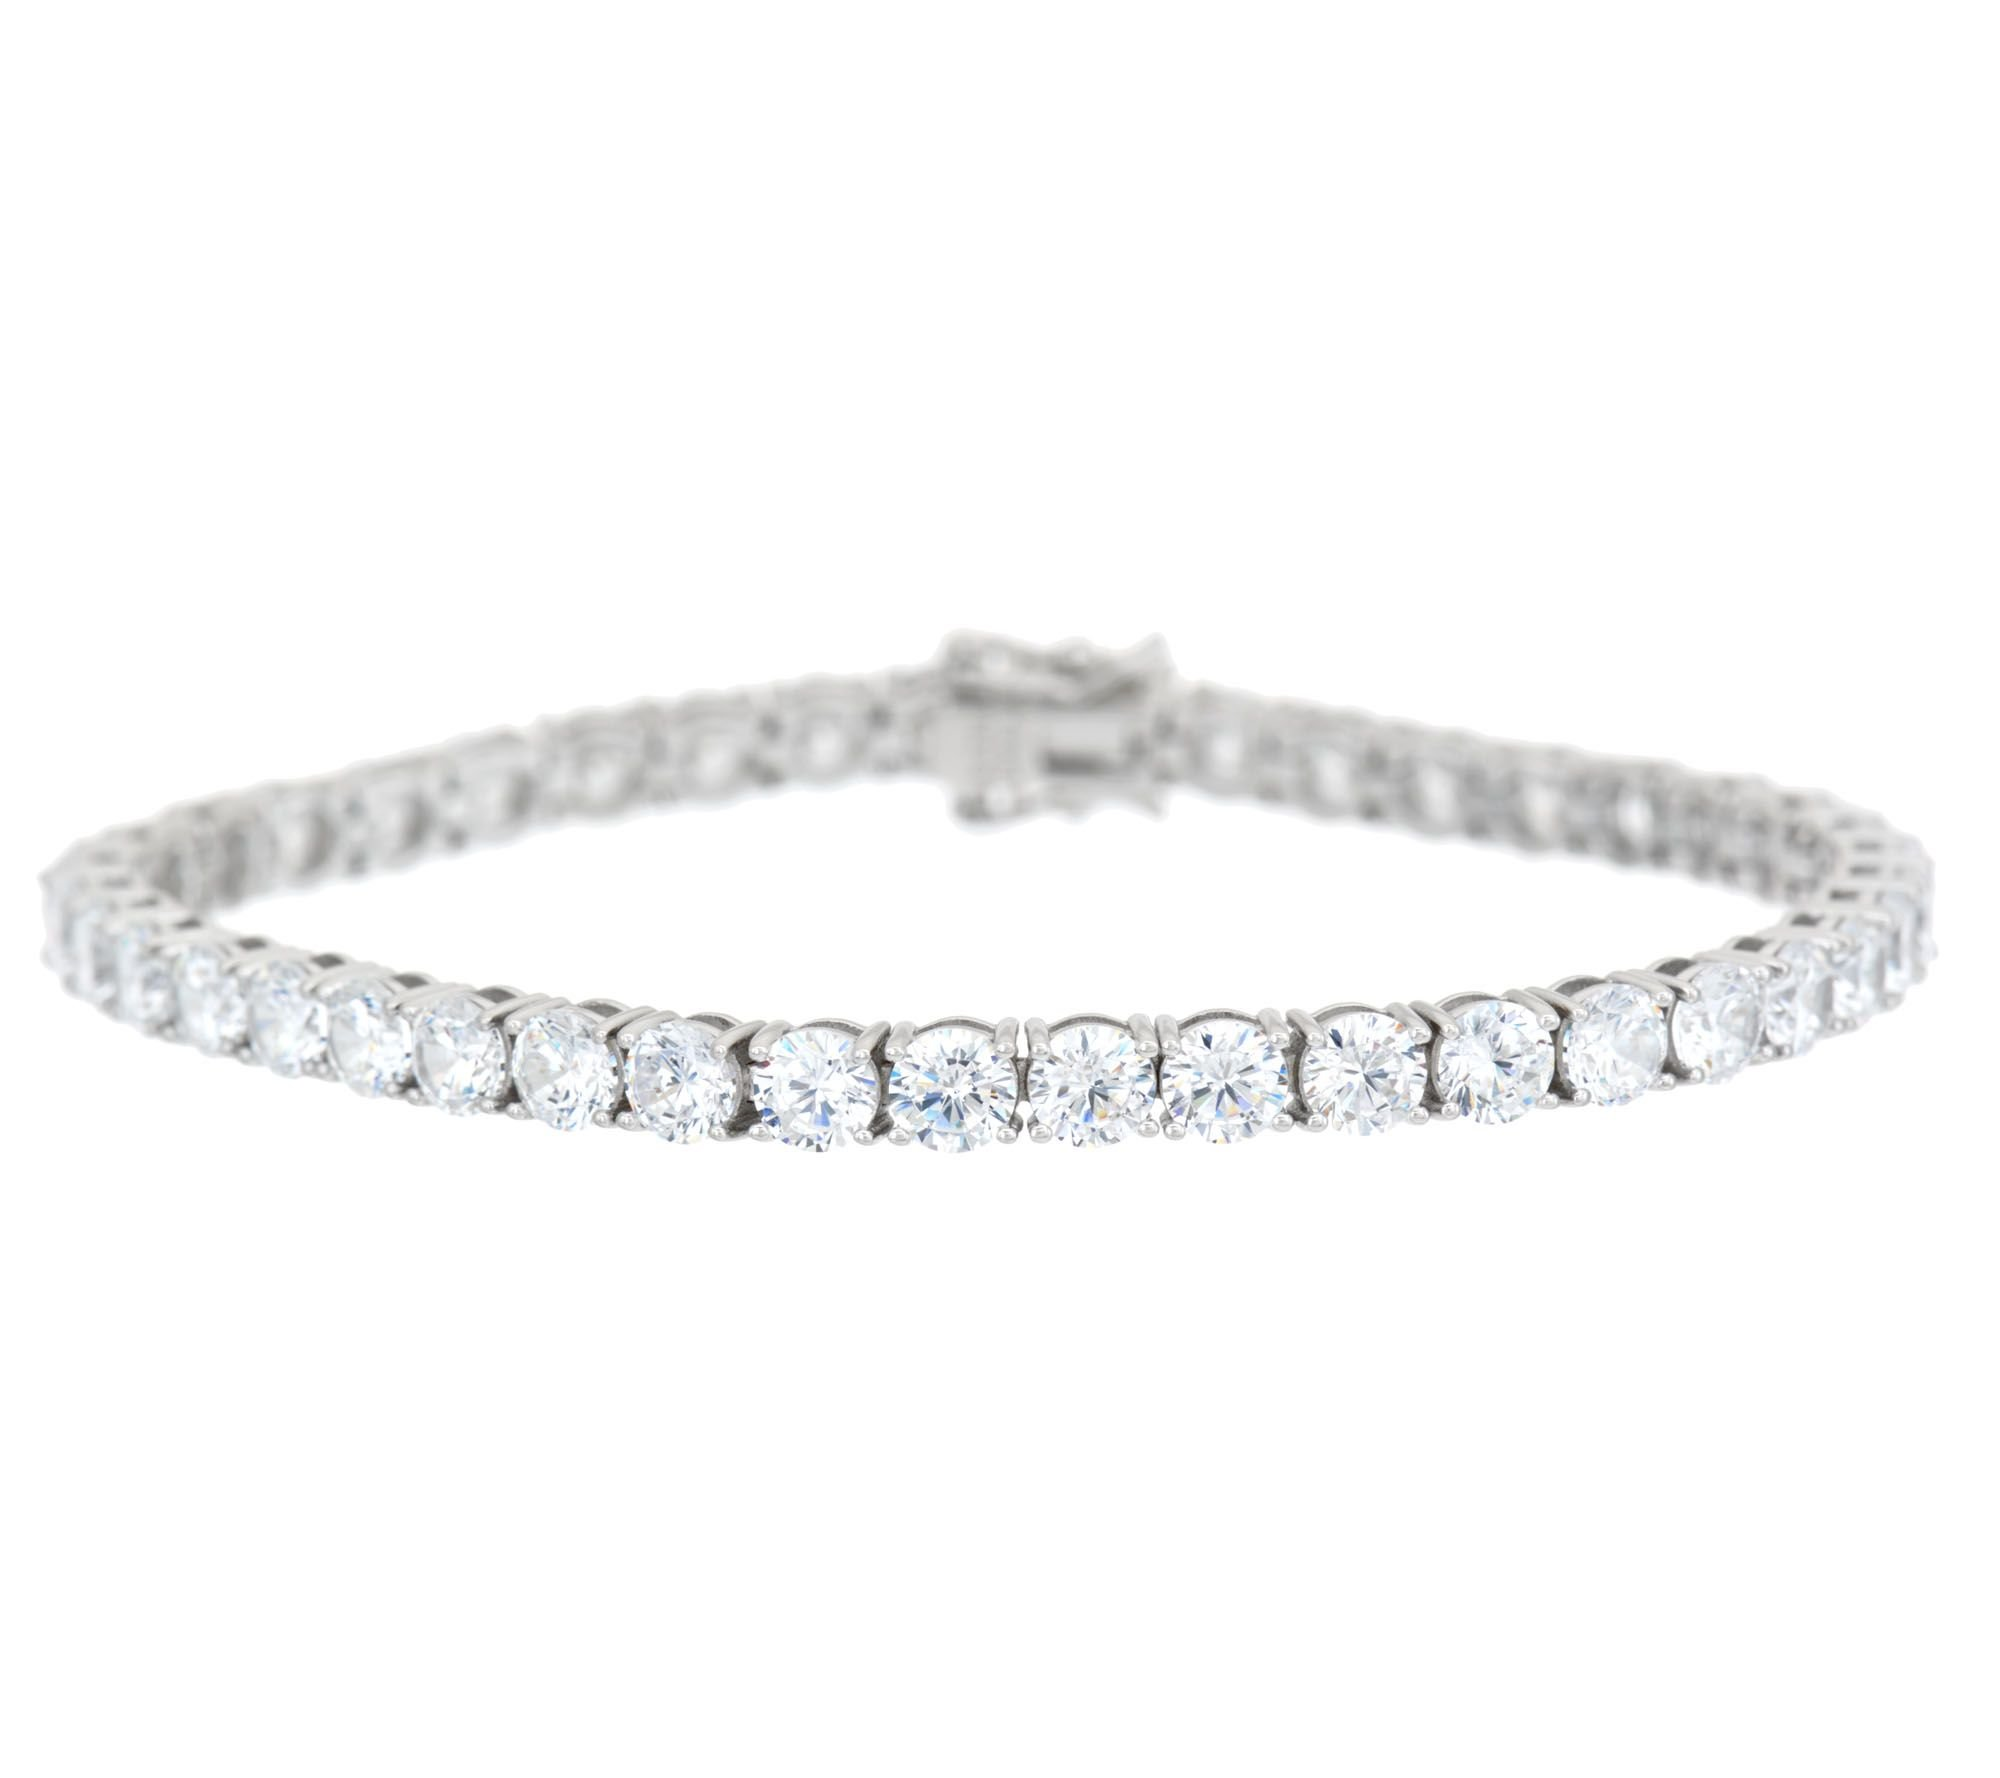 Smjewels Round Cut D/VVS1 Diamond Tennis Bracelet In 14K White Gold Plated Sterling by Smjewels